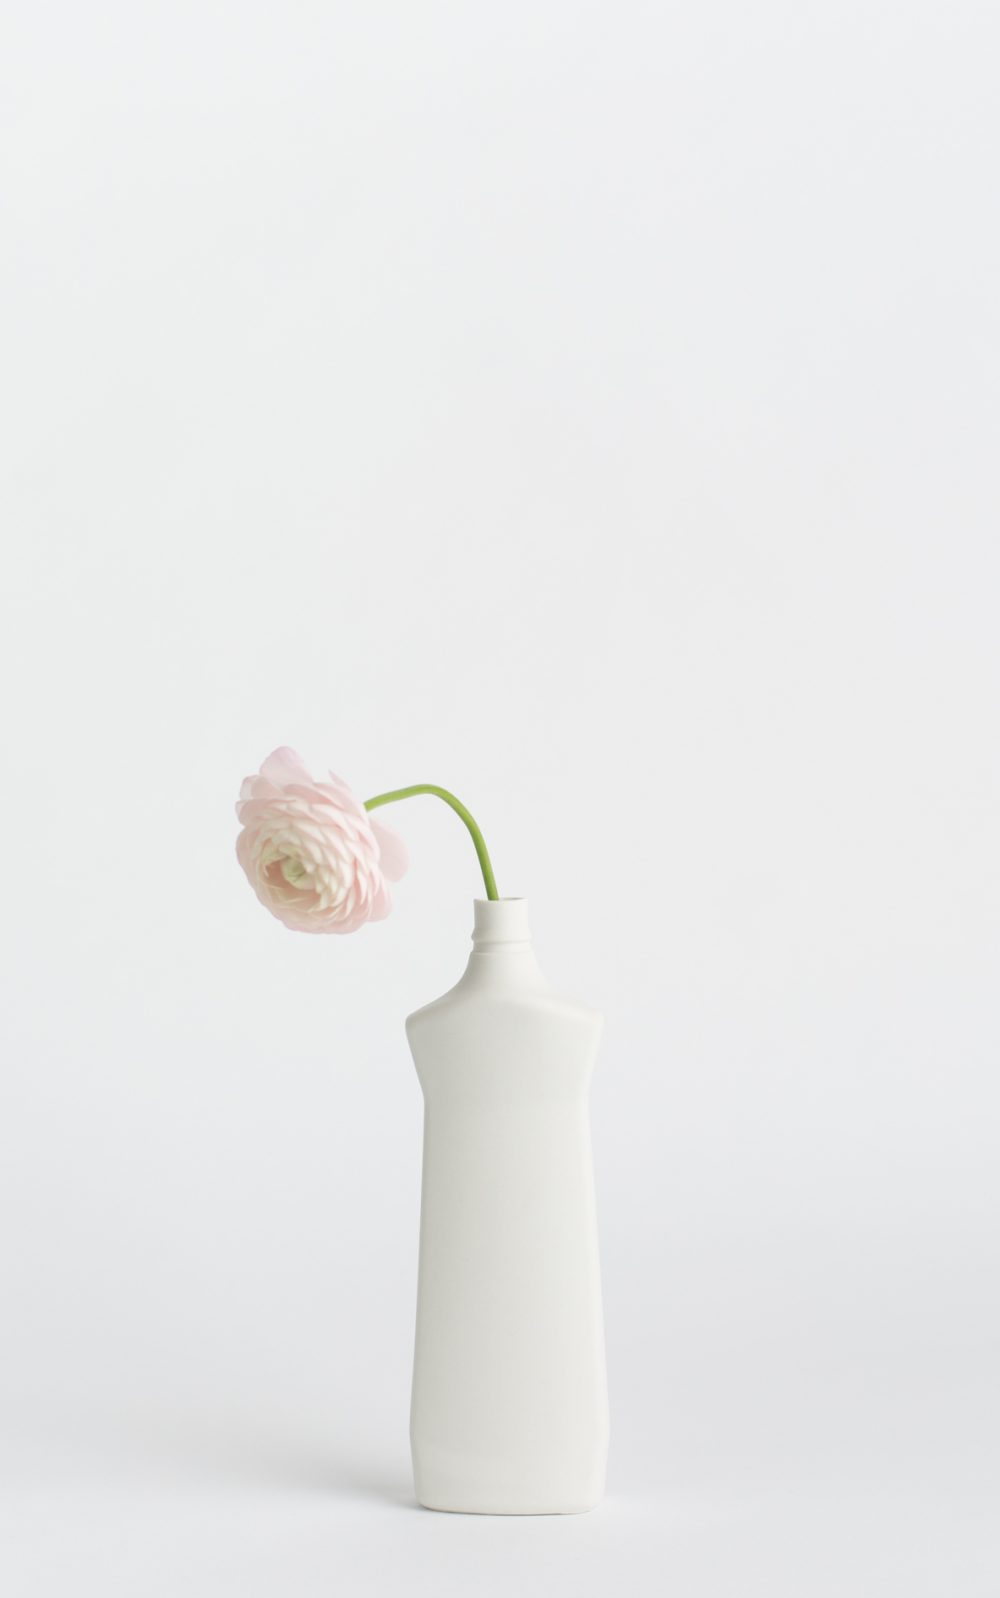 bottle vase #1 white with flower